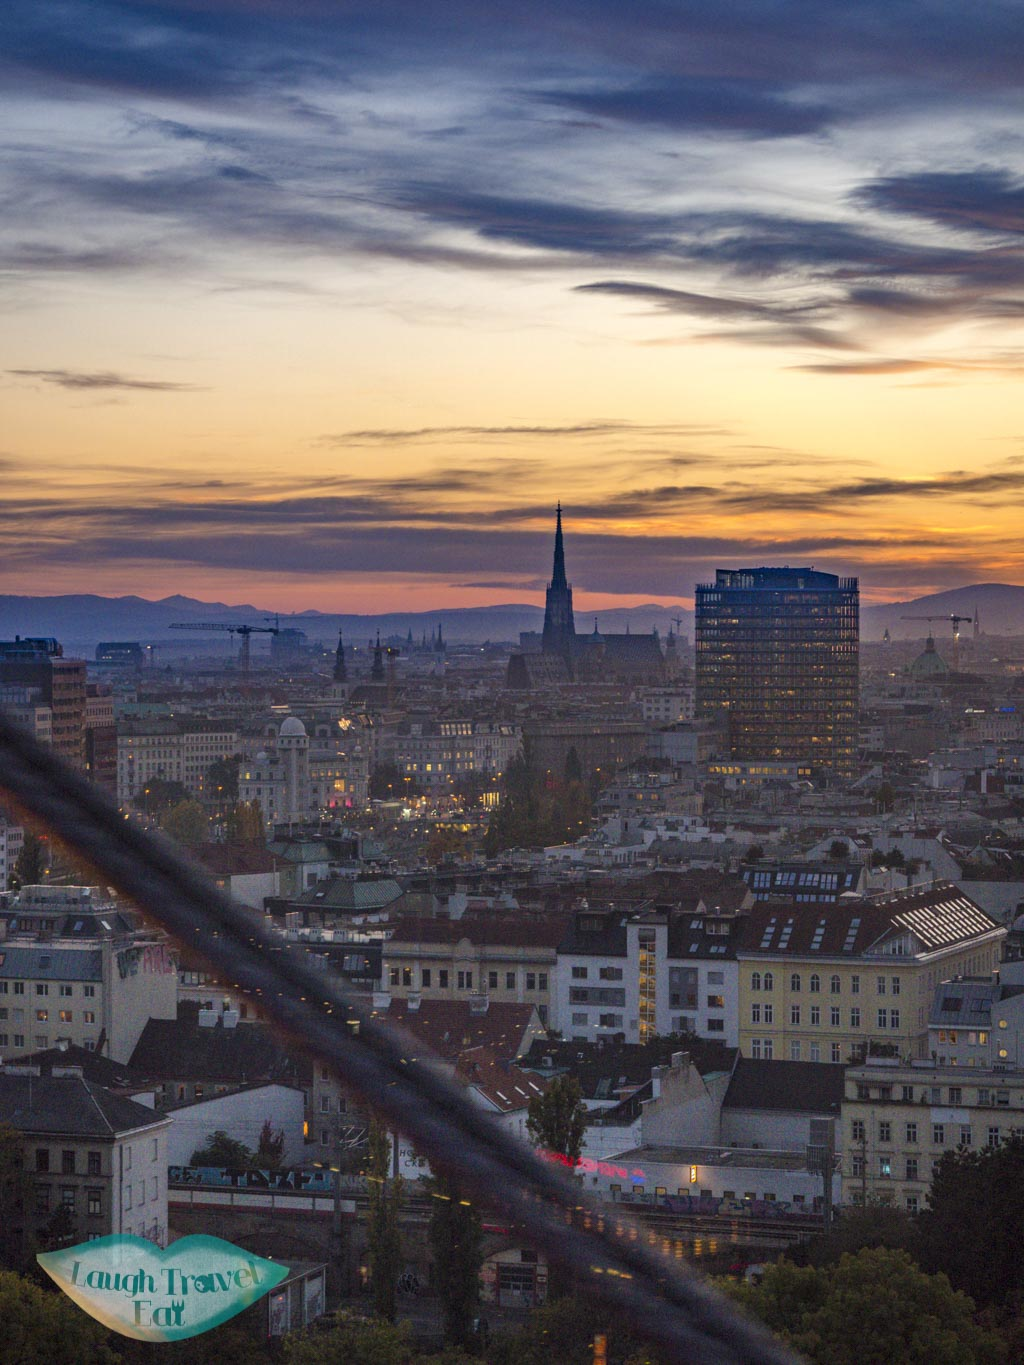 sunset view from ferris wheel vienna austria - laugh travel eat